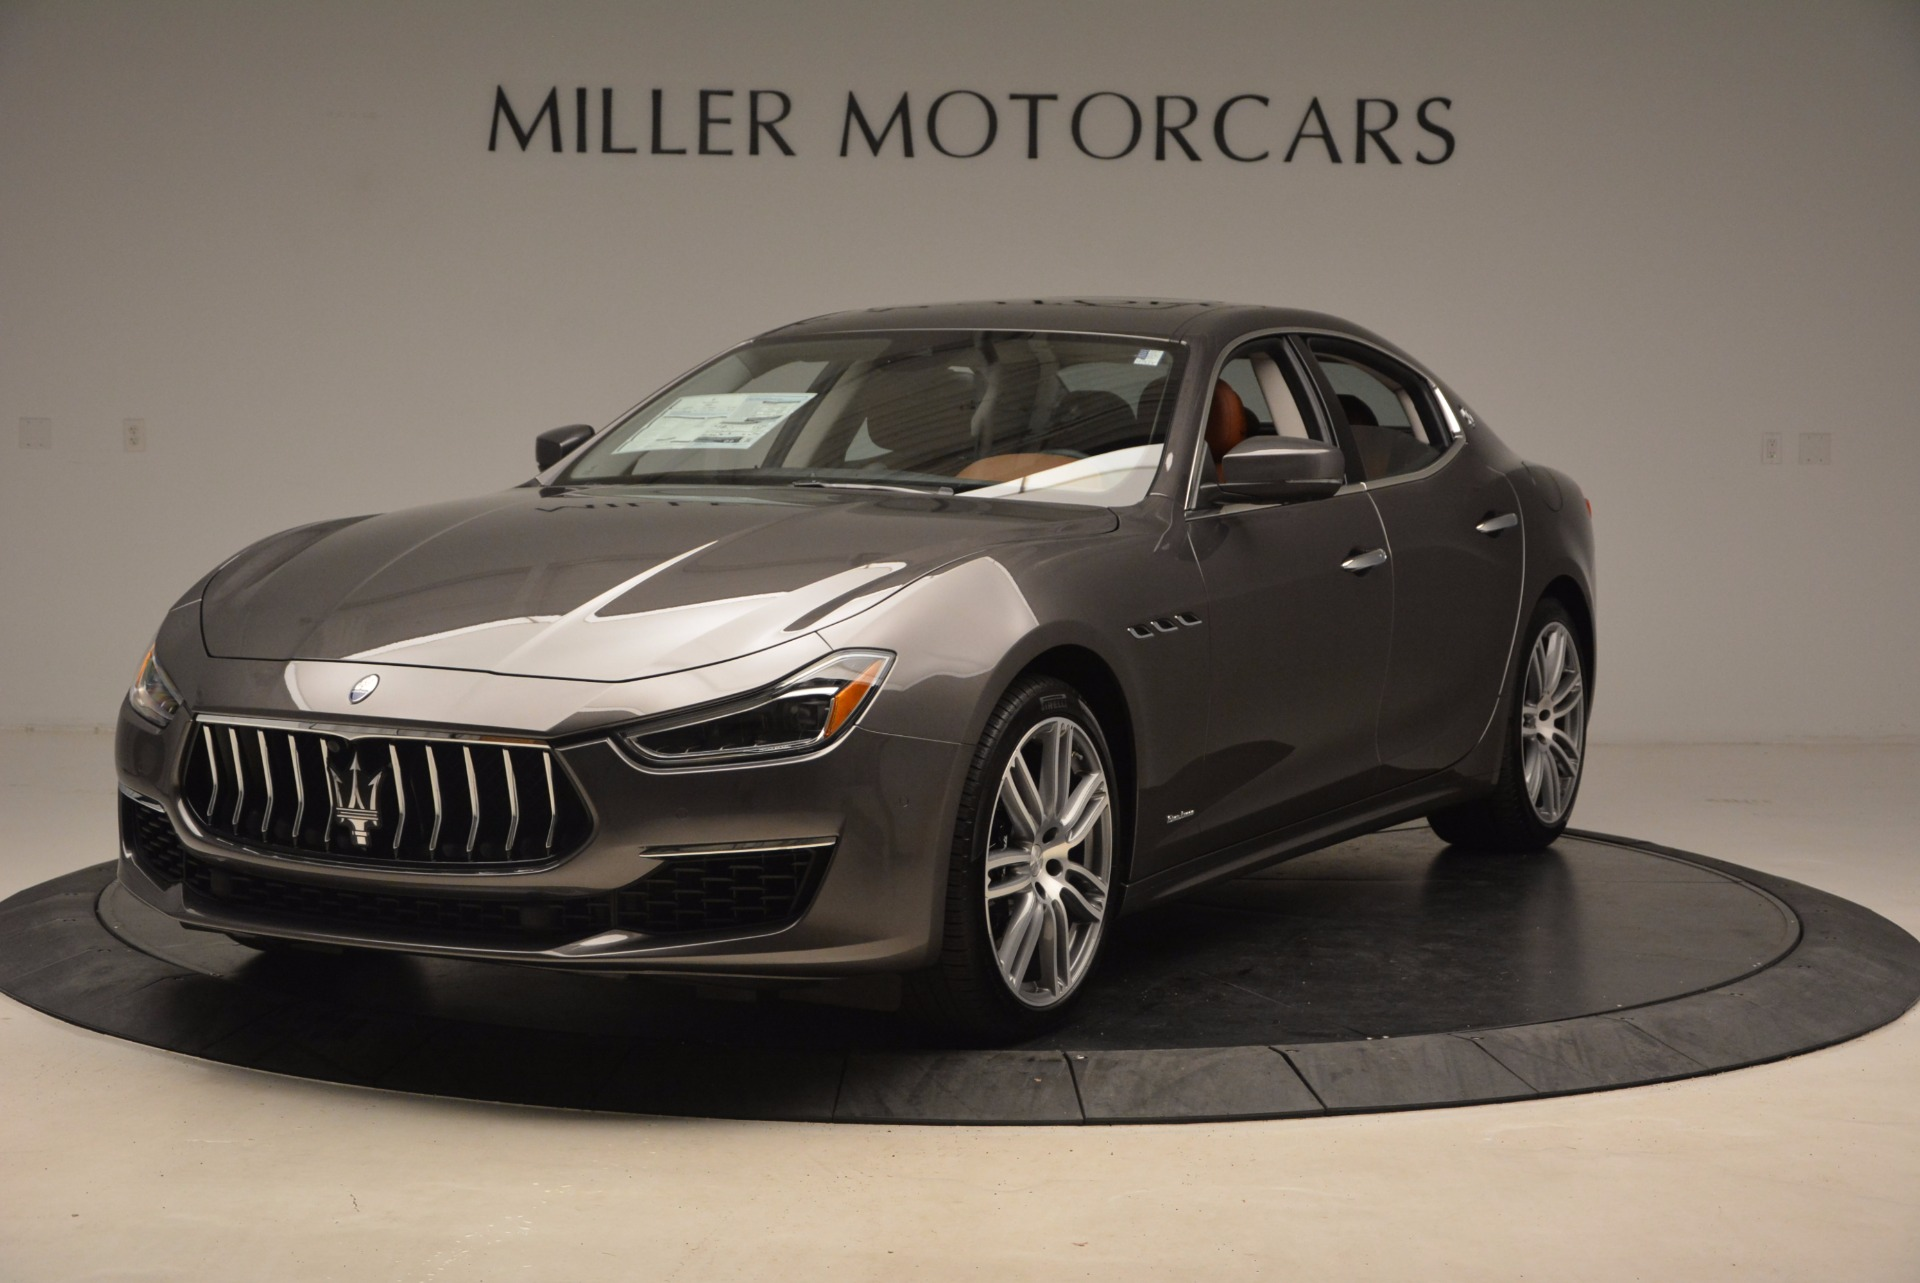 New 2018 Maserati Ghibli S Q4 GranLusso for sale Sold at Bentley Greenwich in Greenwich CT 06830 1